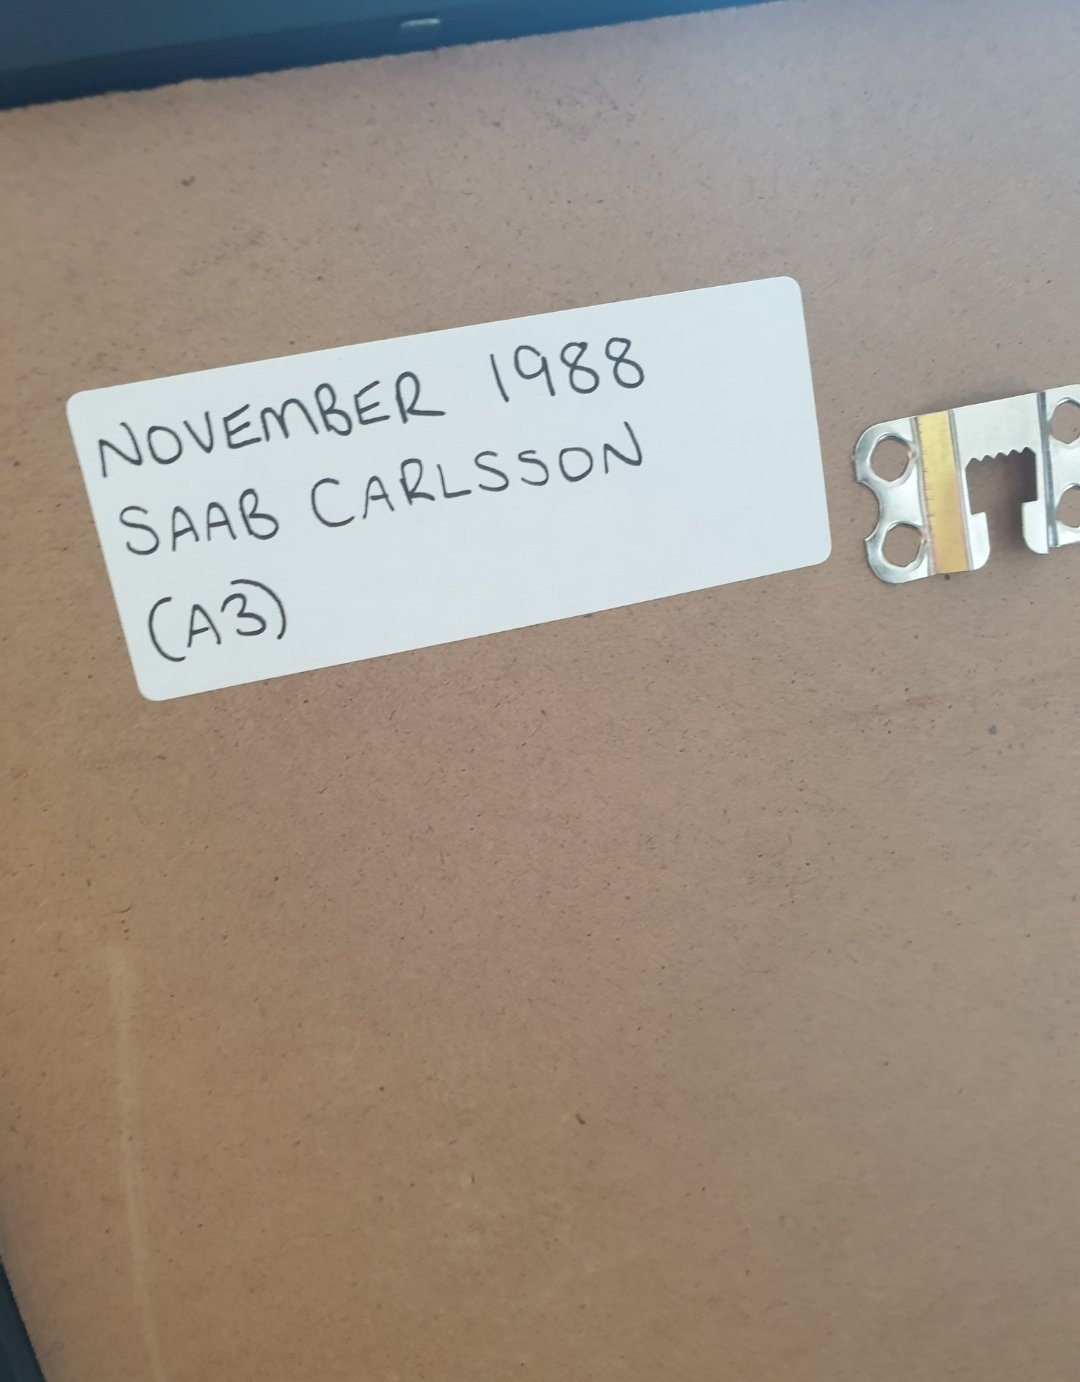 1988 Saab Carlsson Advert Original  For Sale (picture 2 of 2)